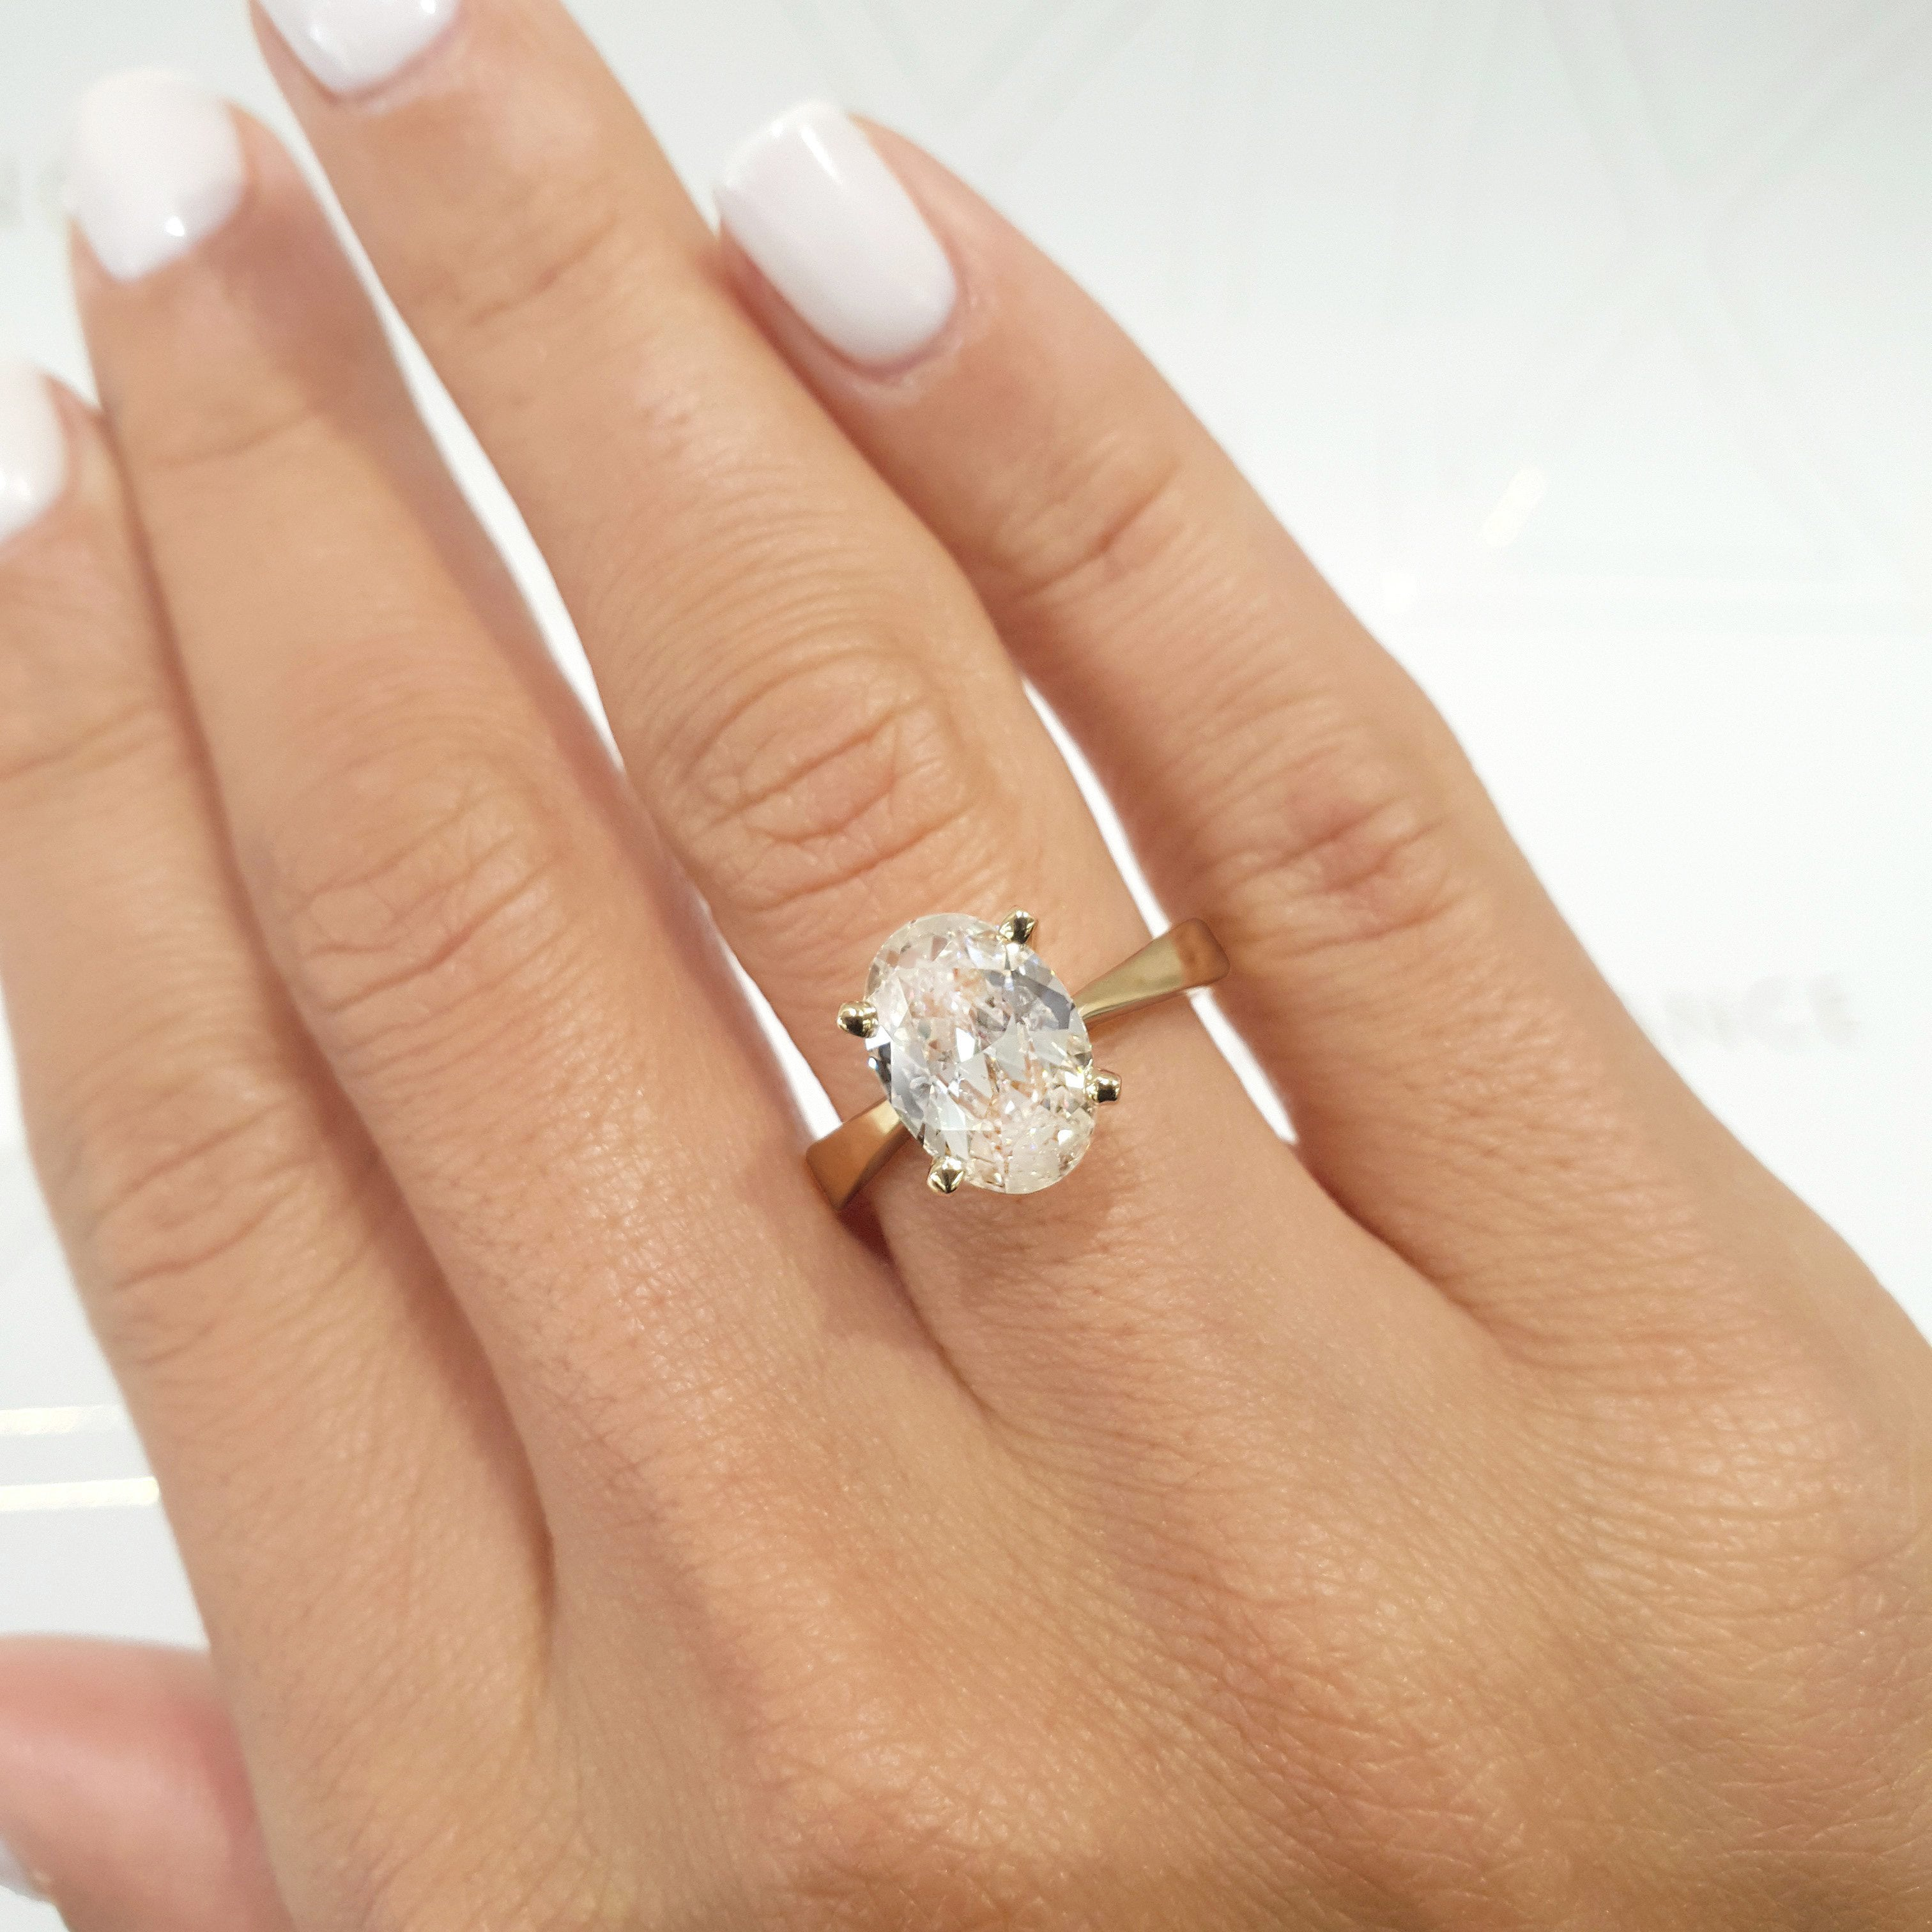 The Diana Engagement Ring  - 2 Carat Oval G VS2 - 14K Yellow Gold Diamond Ring #J99177